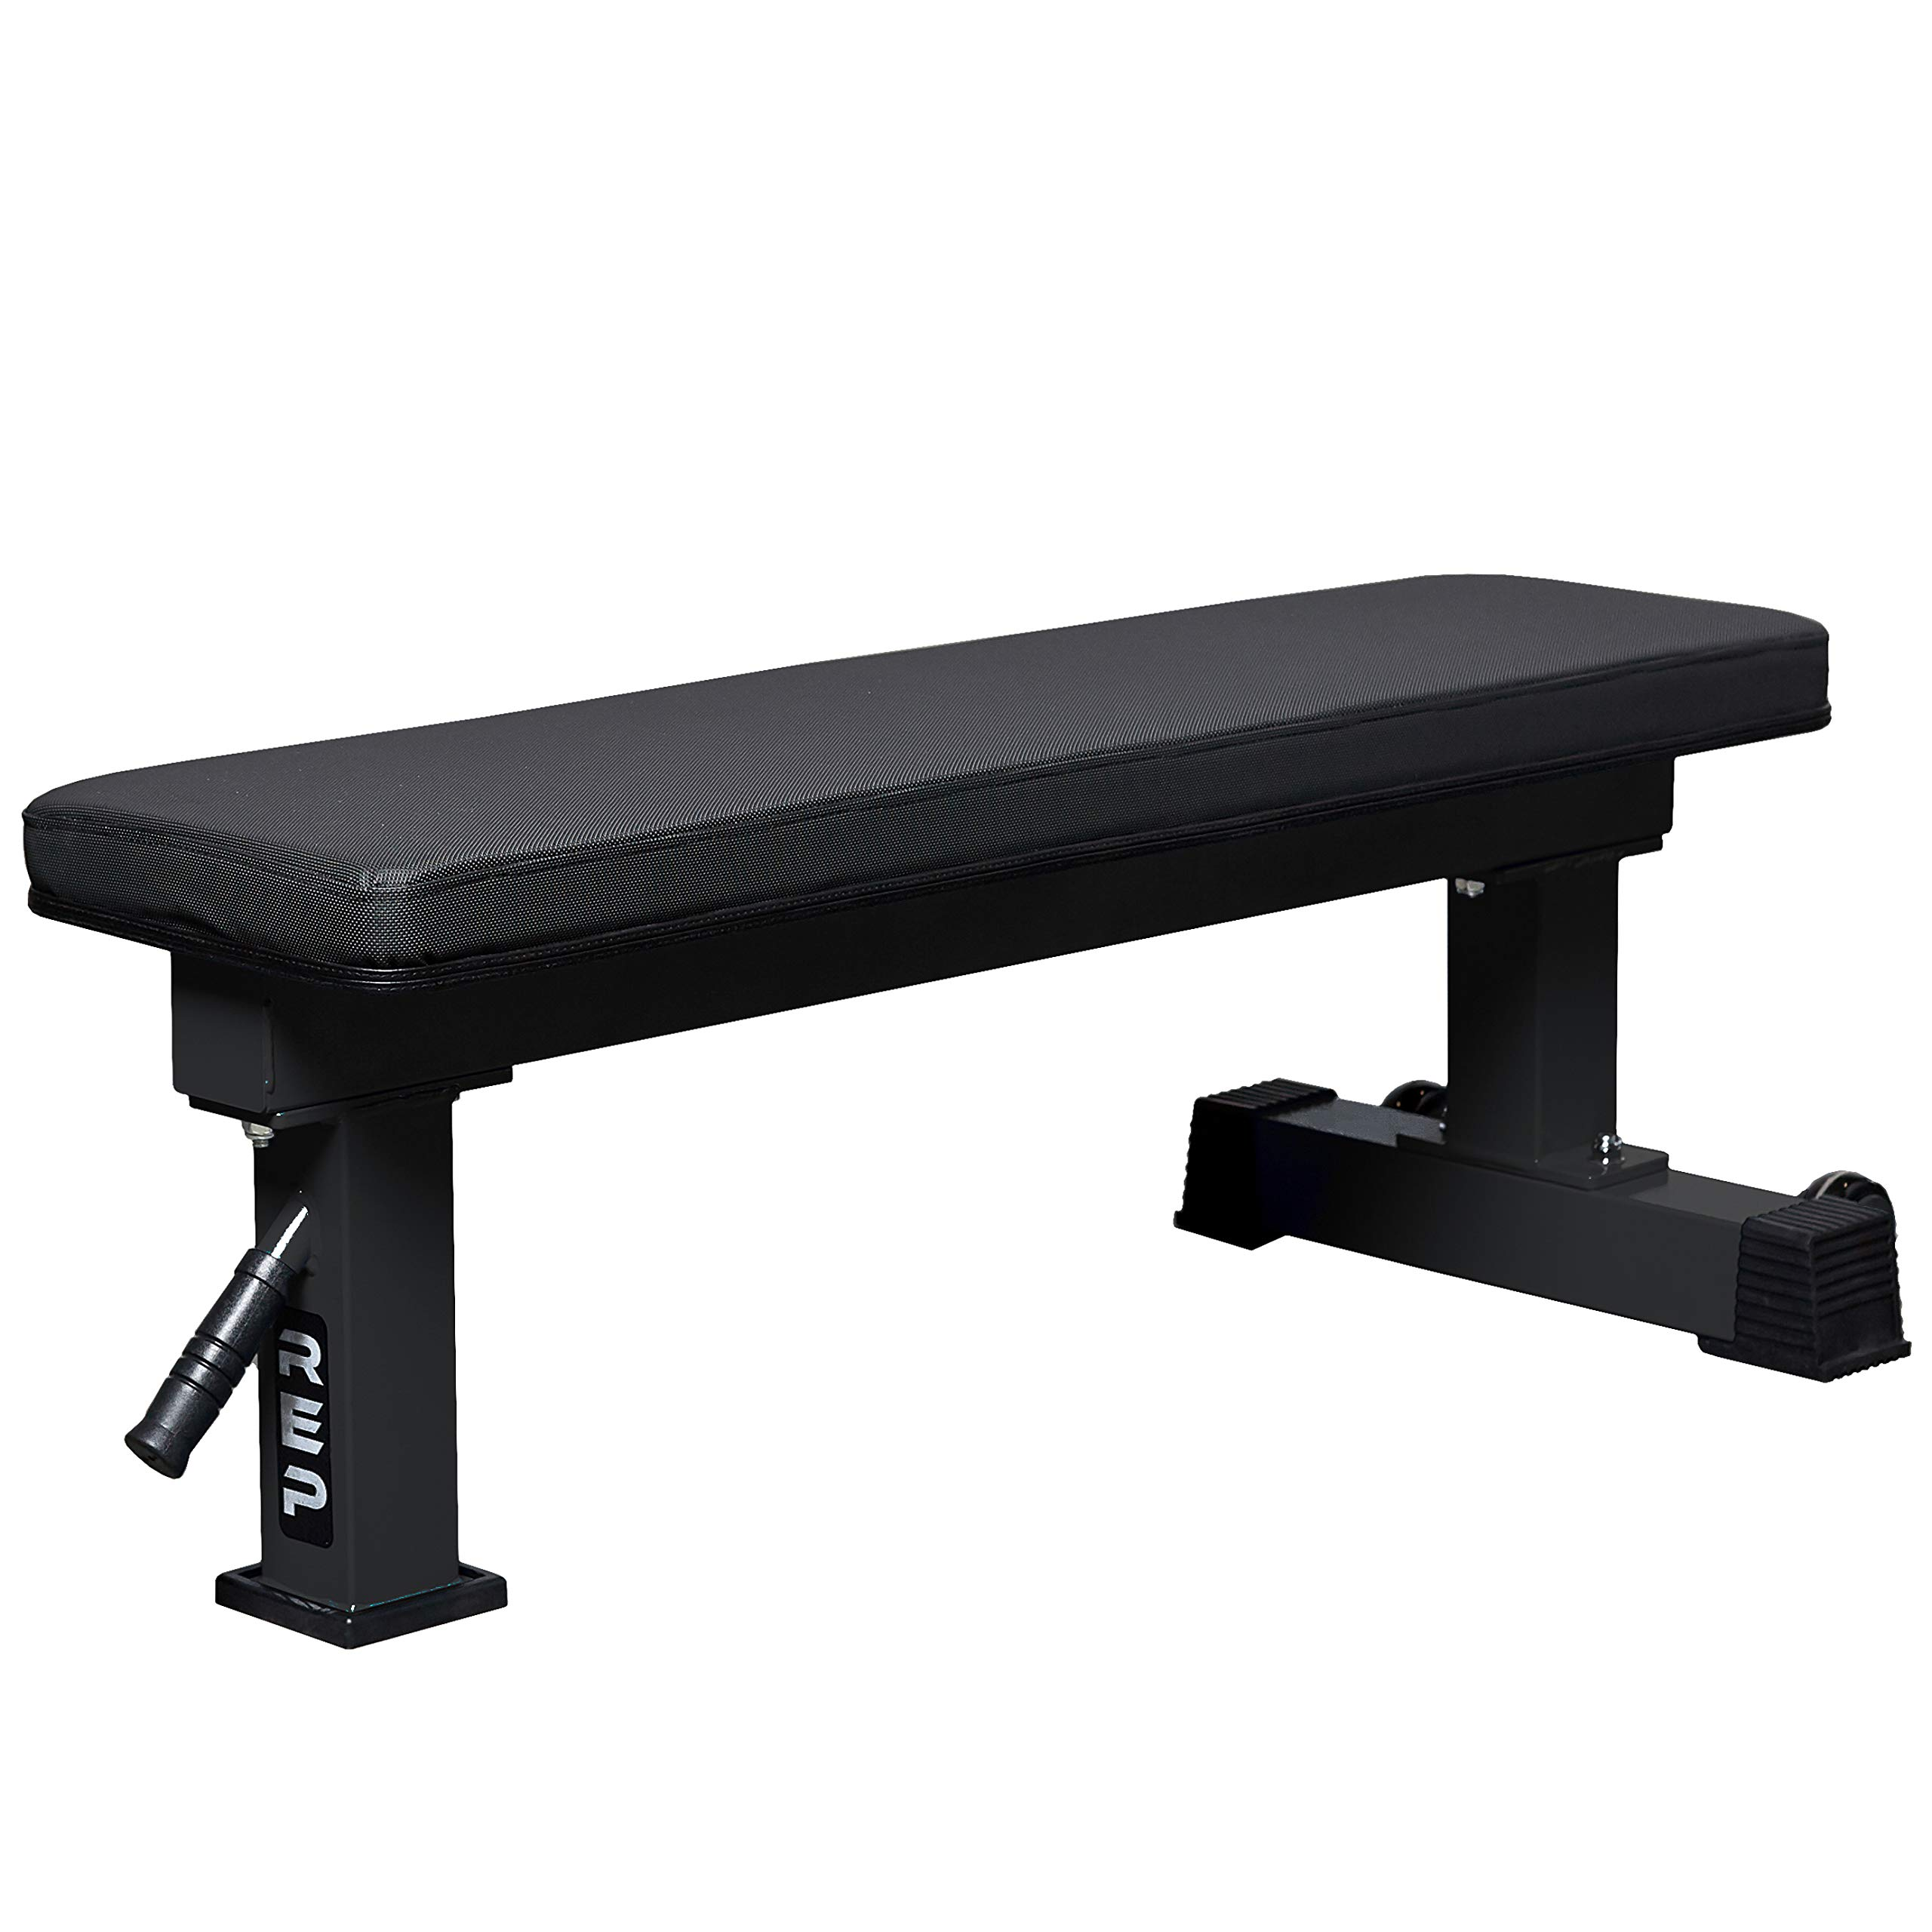 REP FITNESS FB-4000 Competition Light Flat Bench - Metallic Black by REP FITNESS